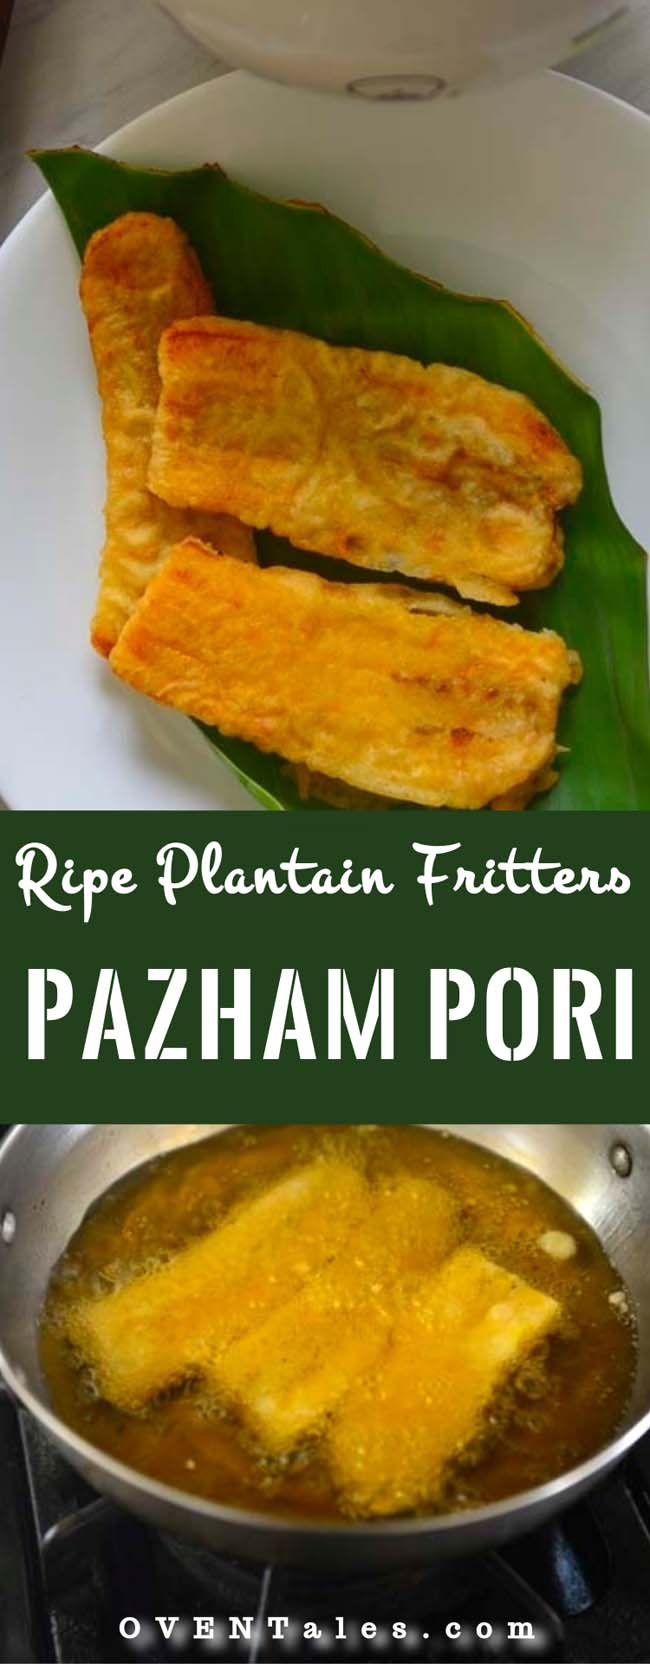 Pazham Pori - or Ethakka Appam - Sweet Plantain Fritters from Kerala